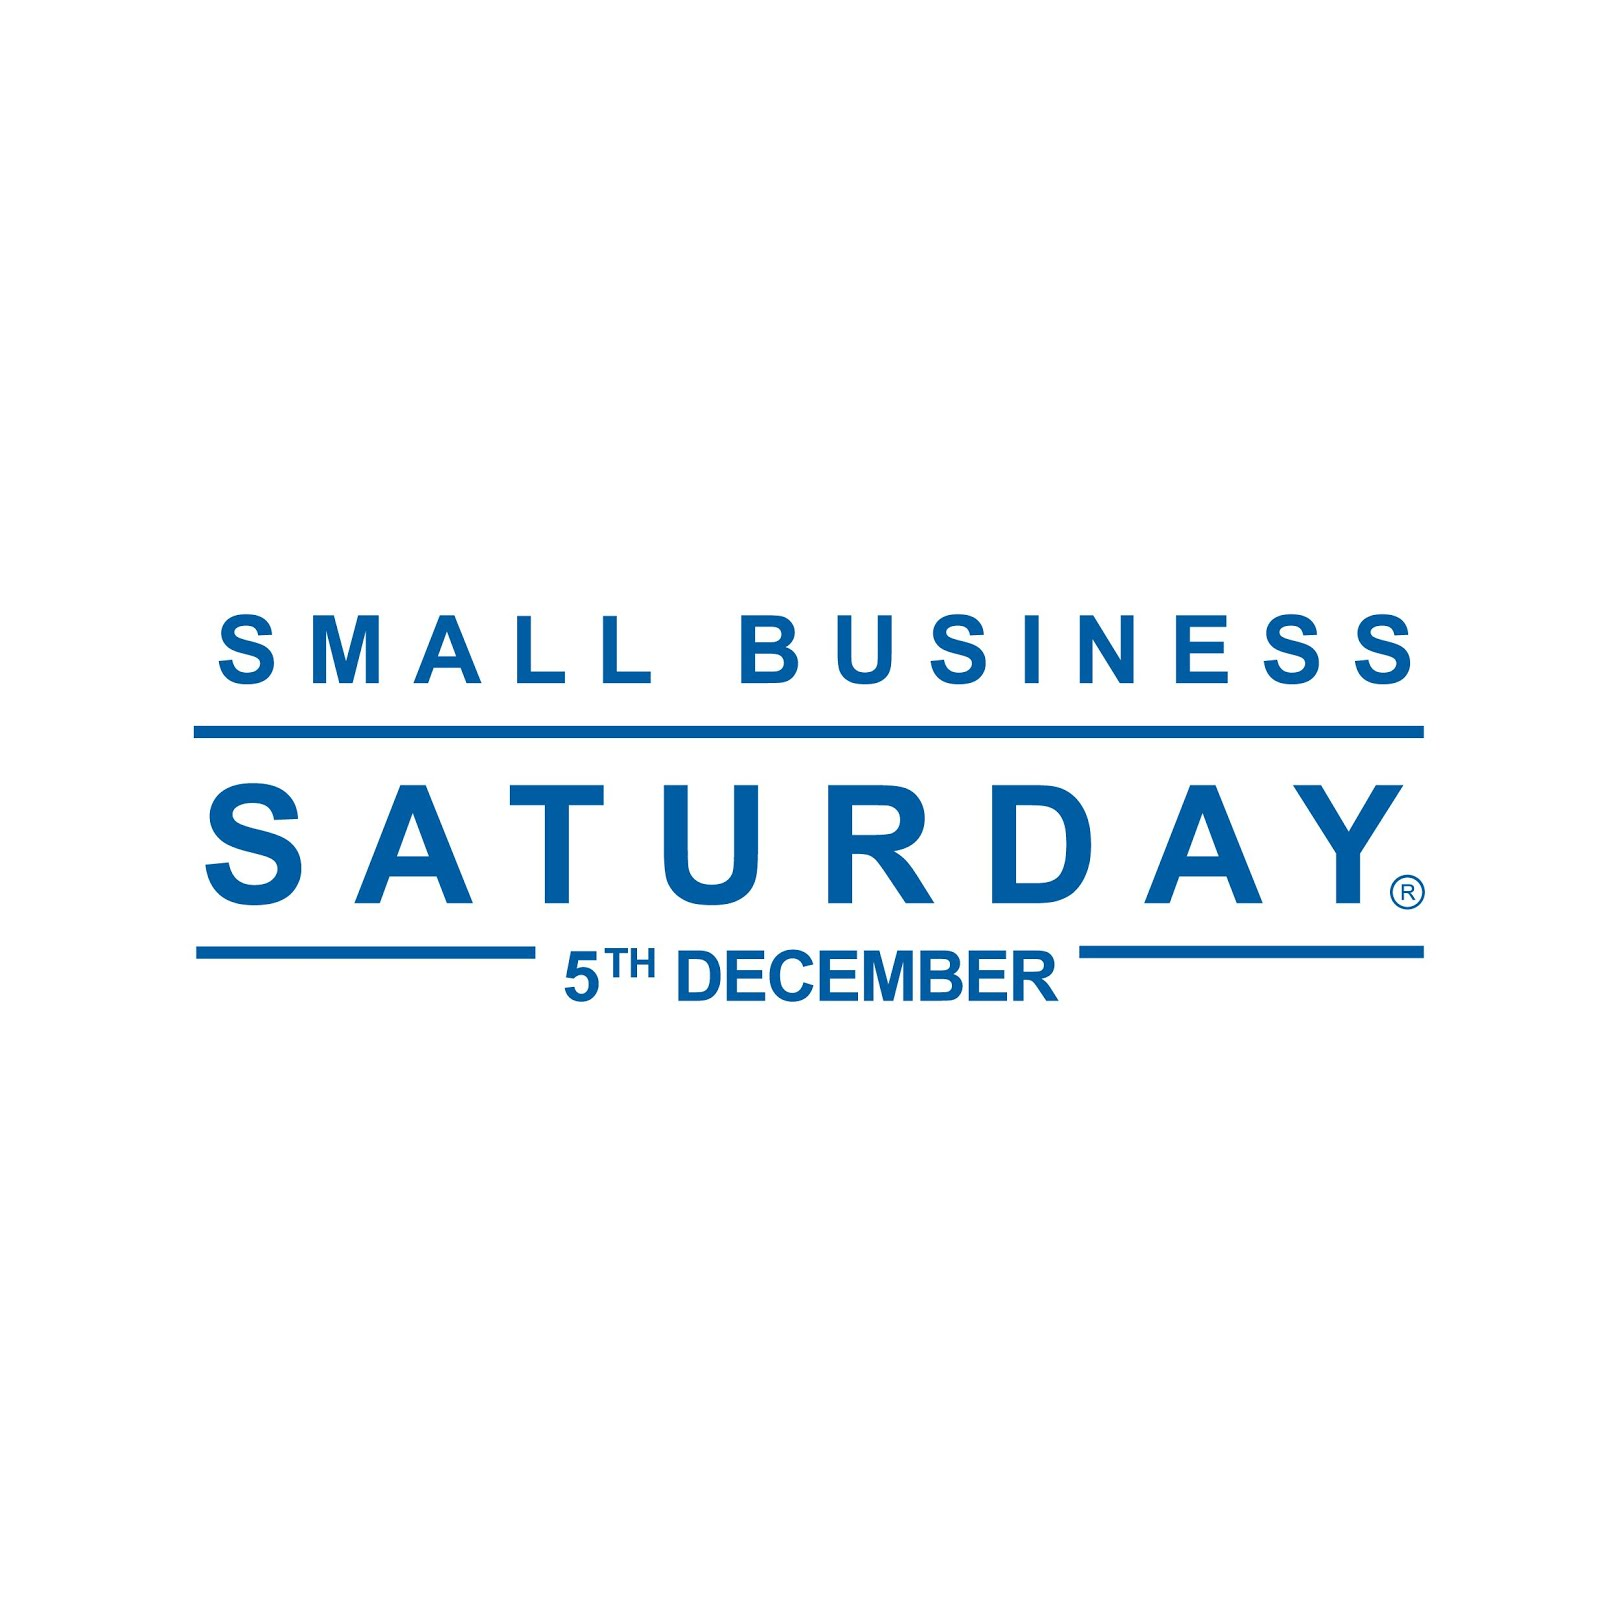 Small Business Saturday 5th Dec